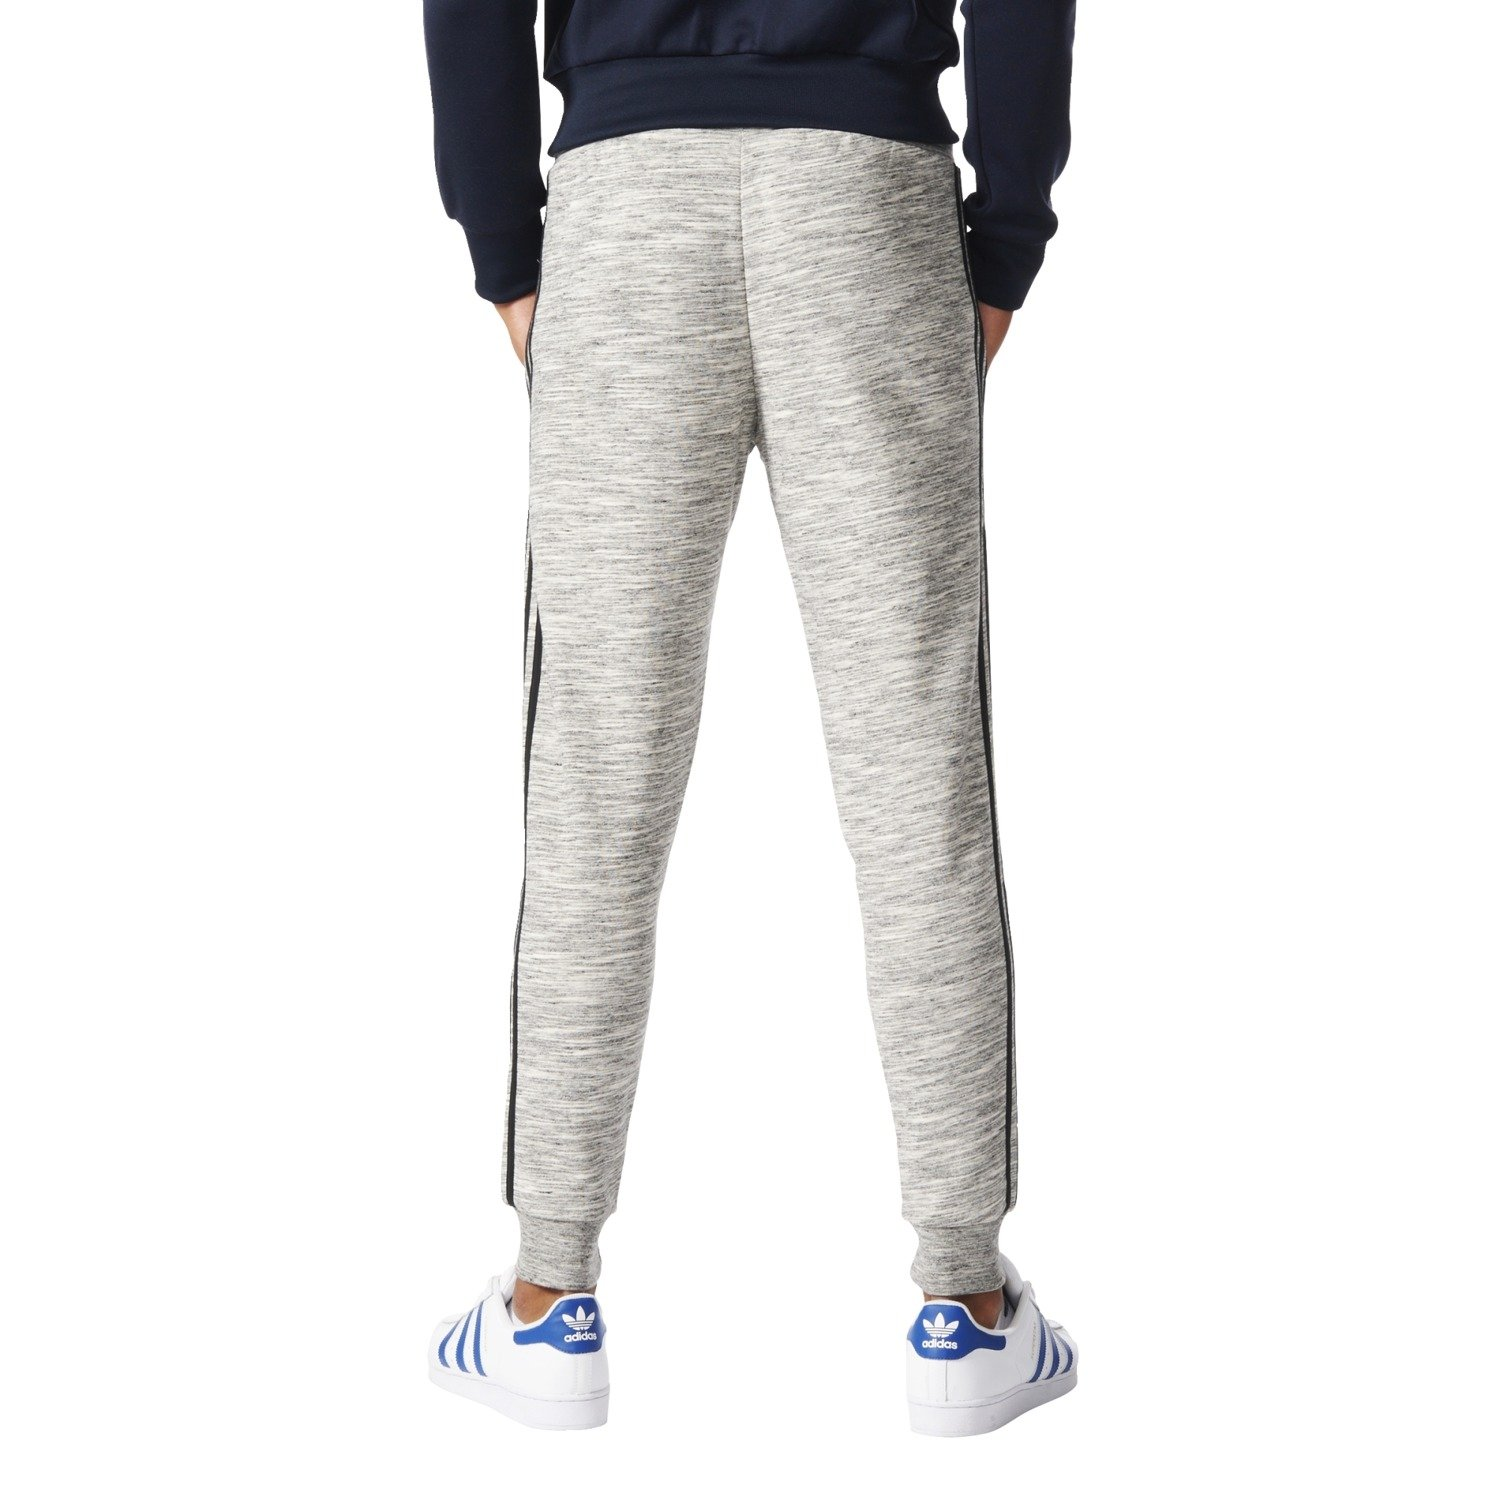 Spodnie adidas Originals CLFN Pants BK5903